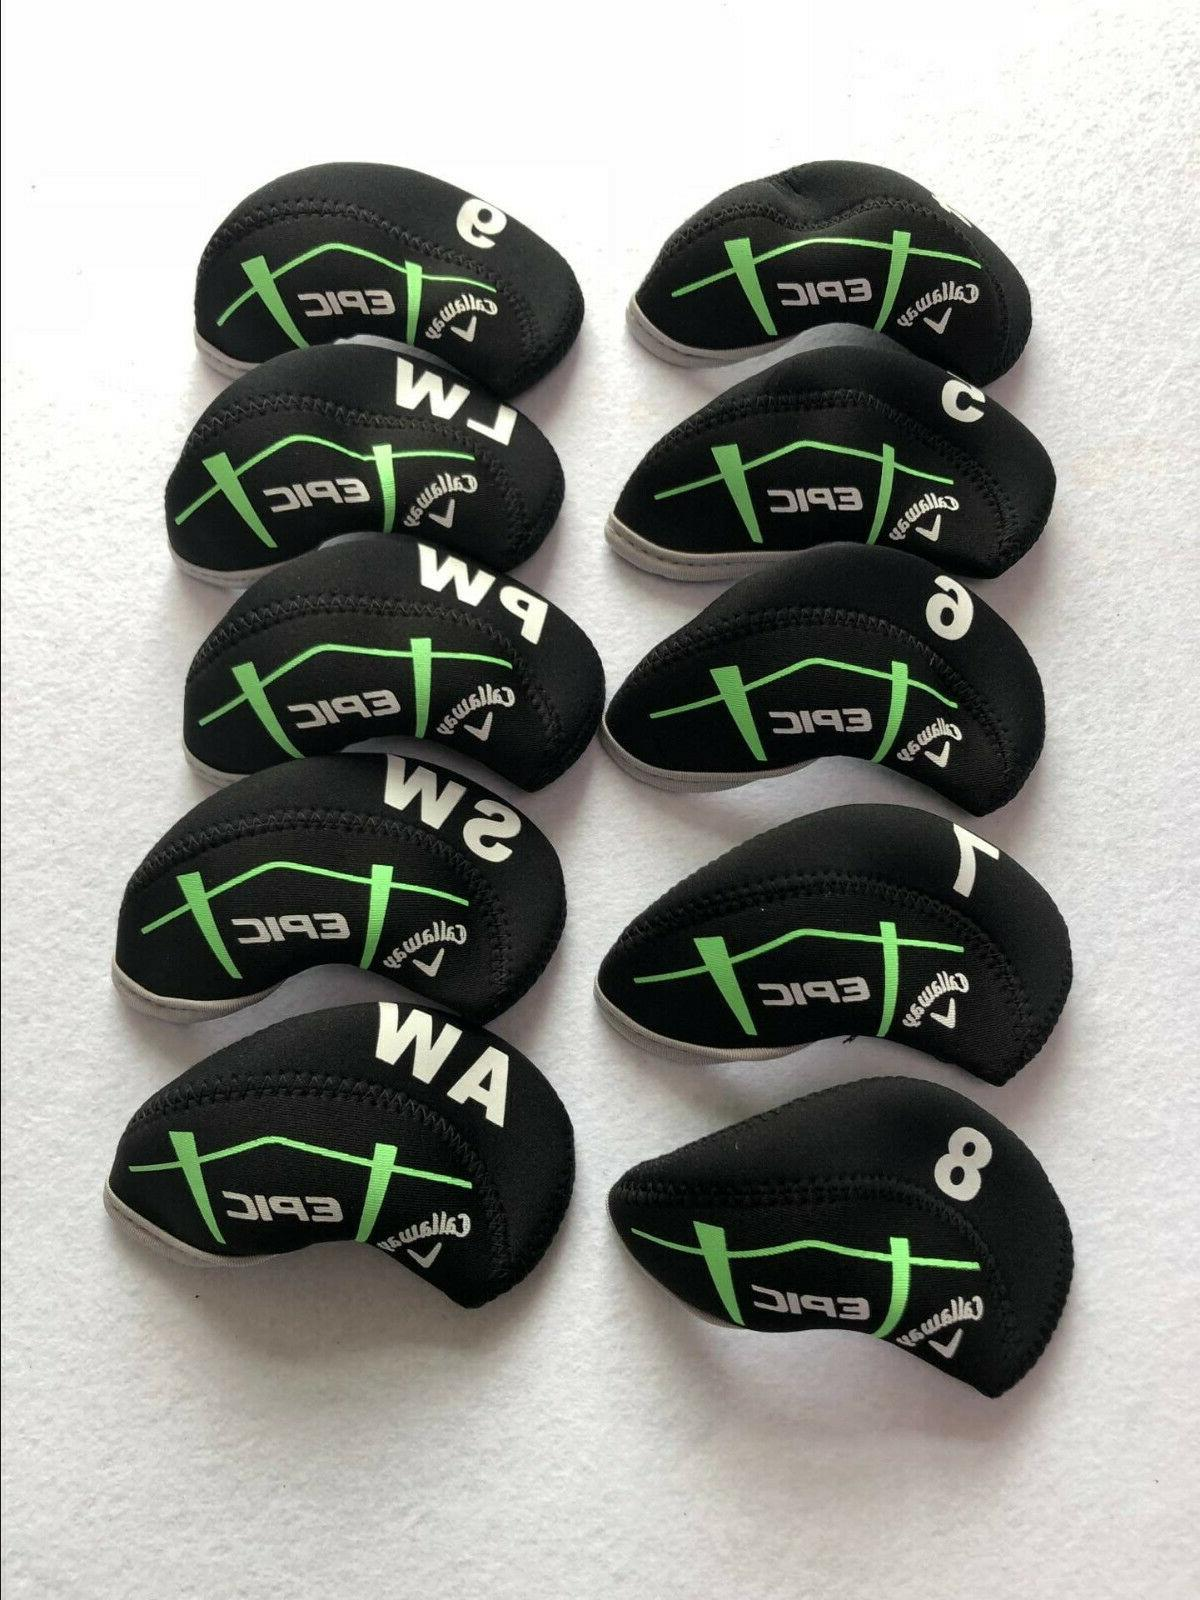 10pcs golf iron headcovers for epic club